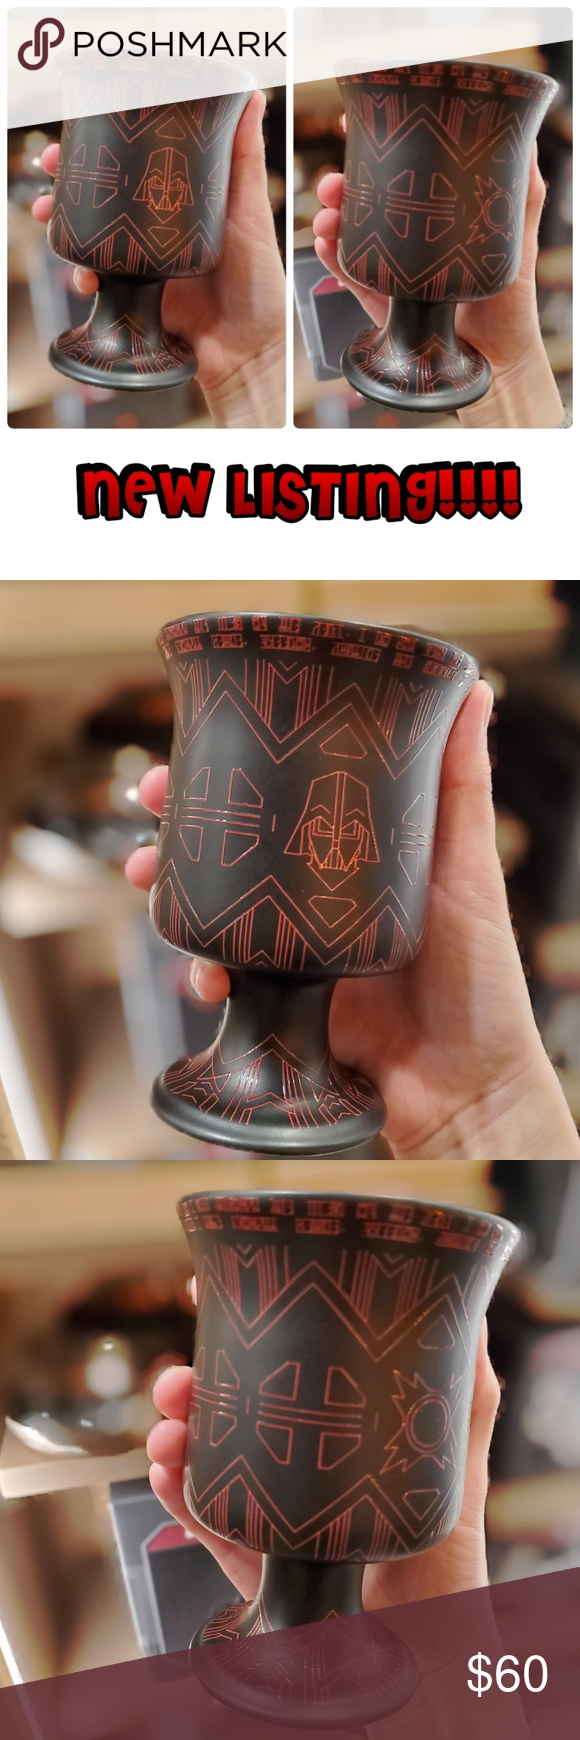 DISNEY PARKS STAR WARS EDGE DARTH VADER MUG 100% AUTHENTIC AND BRAND NEW FROM DISNEYLAND STAR WARS LAND  *****PRICE FOR ONE [1] CUP*****    ENJOY YOUR FAVORITE HOT/COOL BEVERAGE WITH THIS DISNEY PARKS EXCLUSIVE STAR WARS GALAXY EDGE DARK VADER CERAMIC MUG. DRINK IN STYLE AND MAKETHOSE AROUND YOU ENVIOUS!   HOT/COLD BEVERAGES  CONTRAST HANDLE  HIGH GLOSS CONTRAST GLAZE INTERIOR  CERAMIC  IMPORTED Disney Kitchen Coffee & Tea Accessories #disneykitchen